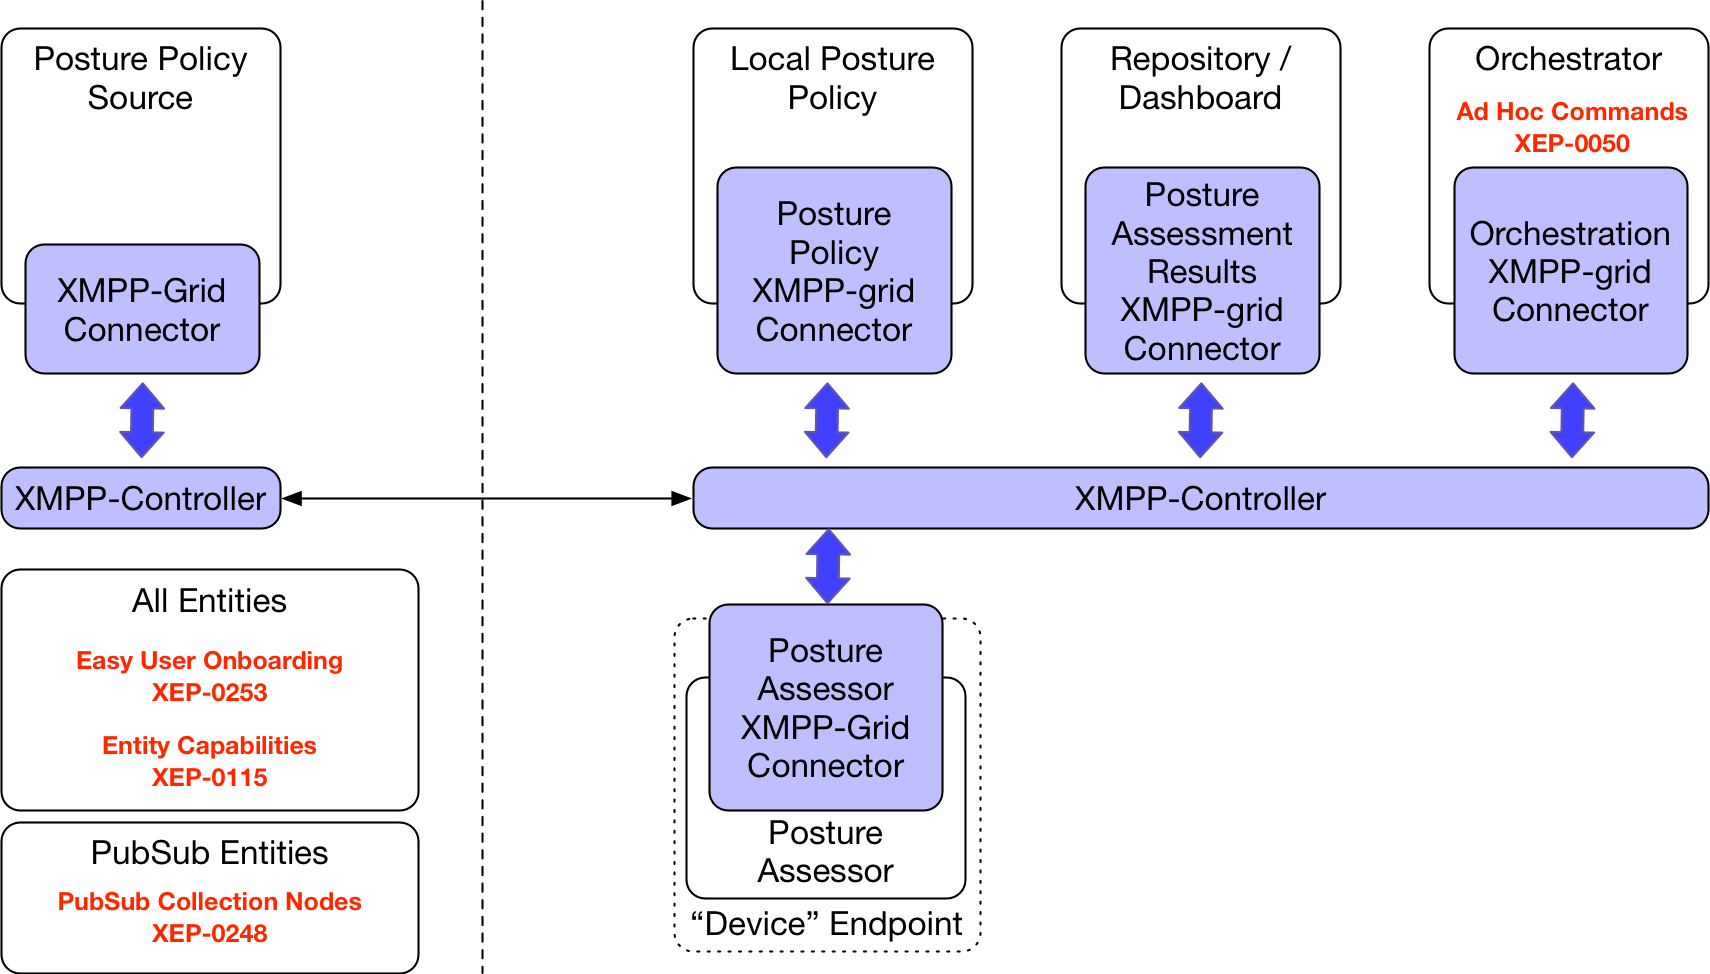 Possible XMPP Extensions